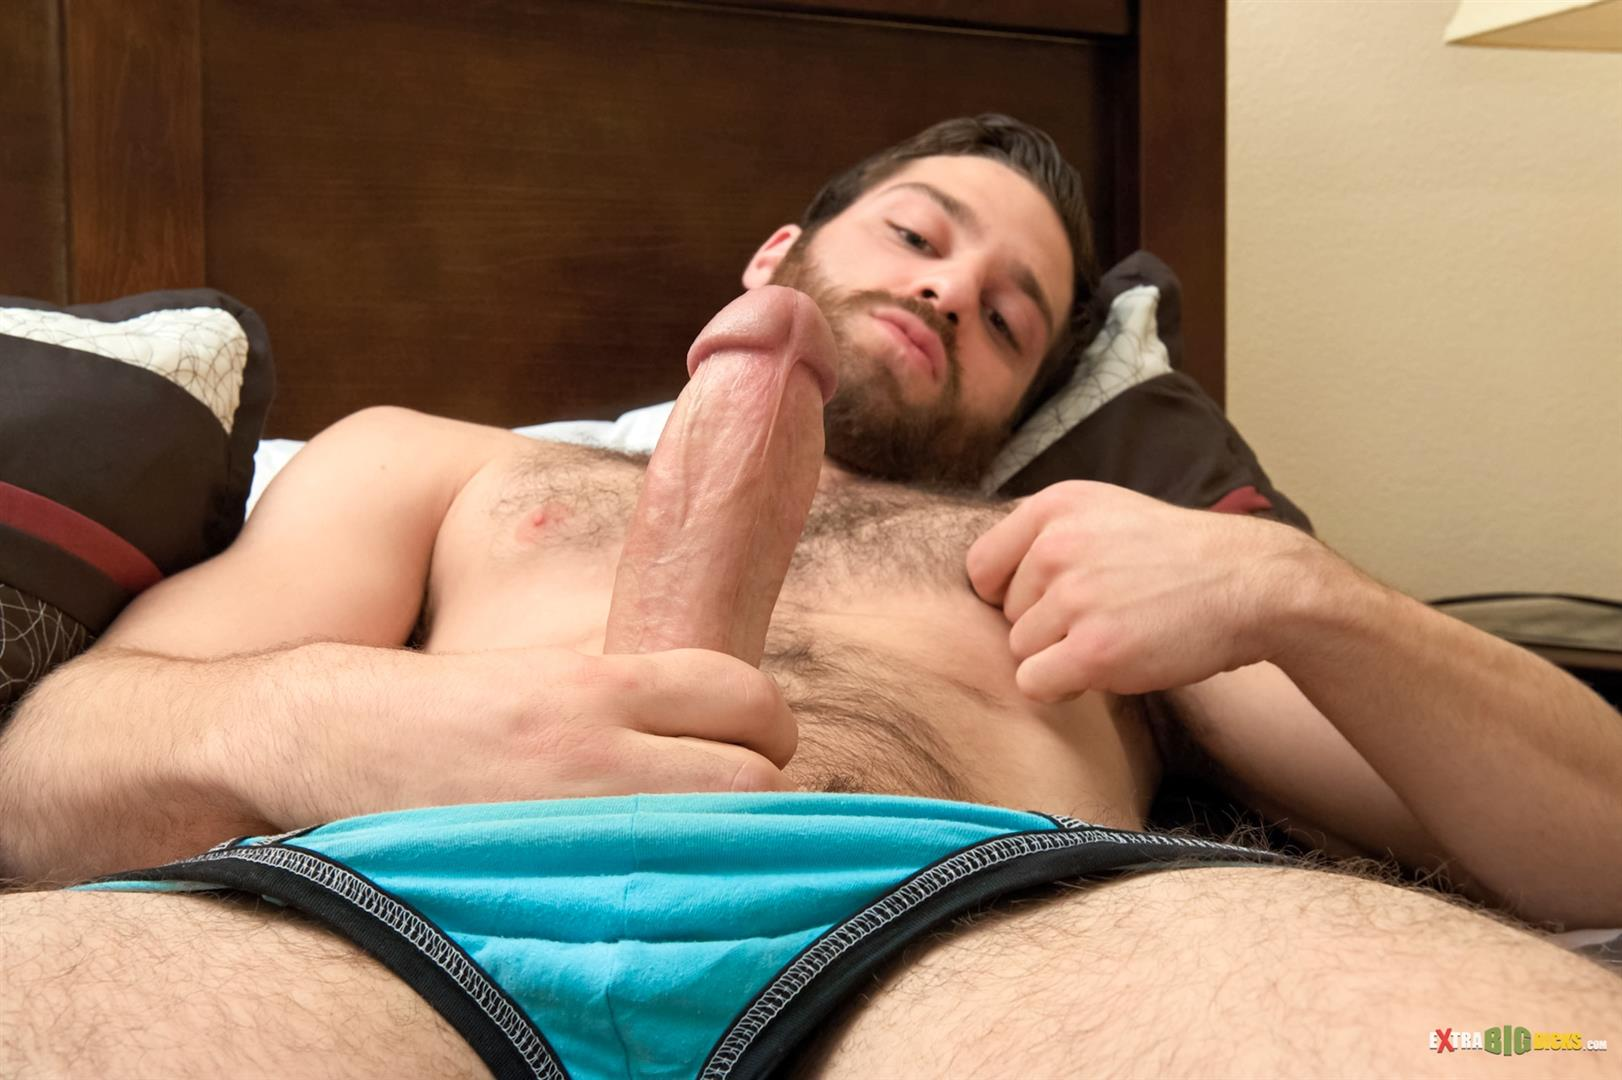 Extra Big Dicks Tommy Defendi Hairy Muscle Guy Jerking Off Amateur Gay Porn 06 Hairy Muscle Stud Tommy Defendi Jerking Off His Big Thick Cock